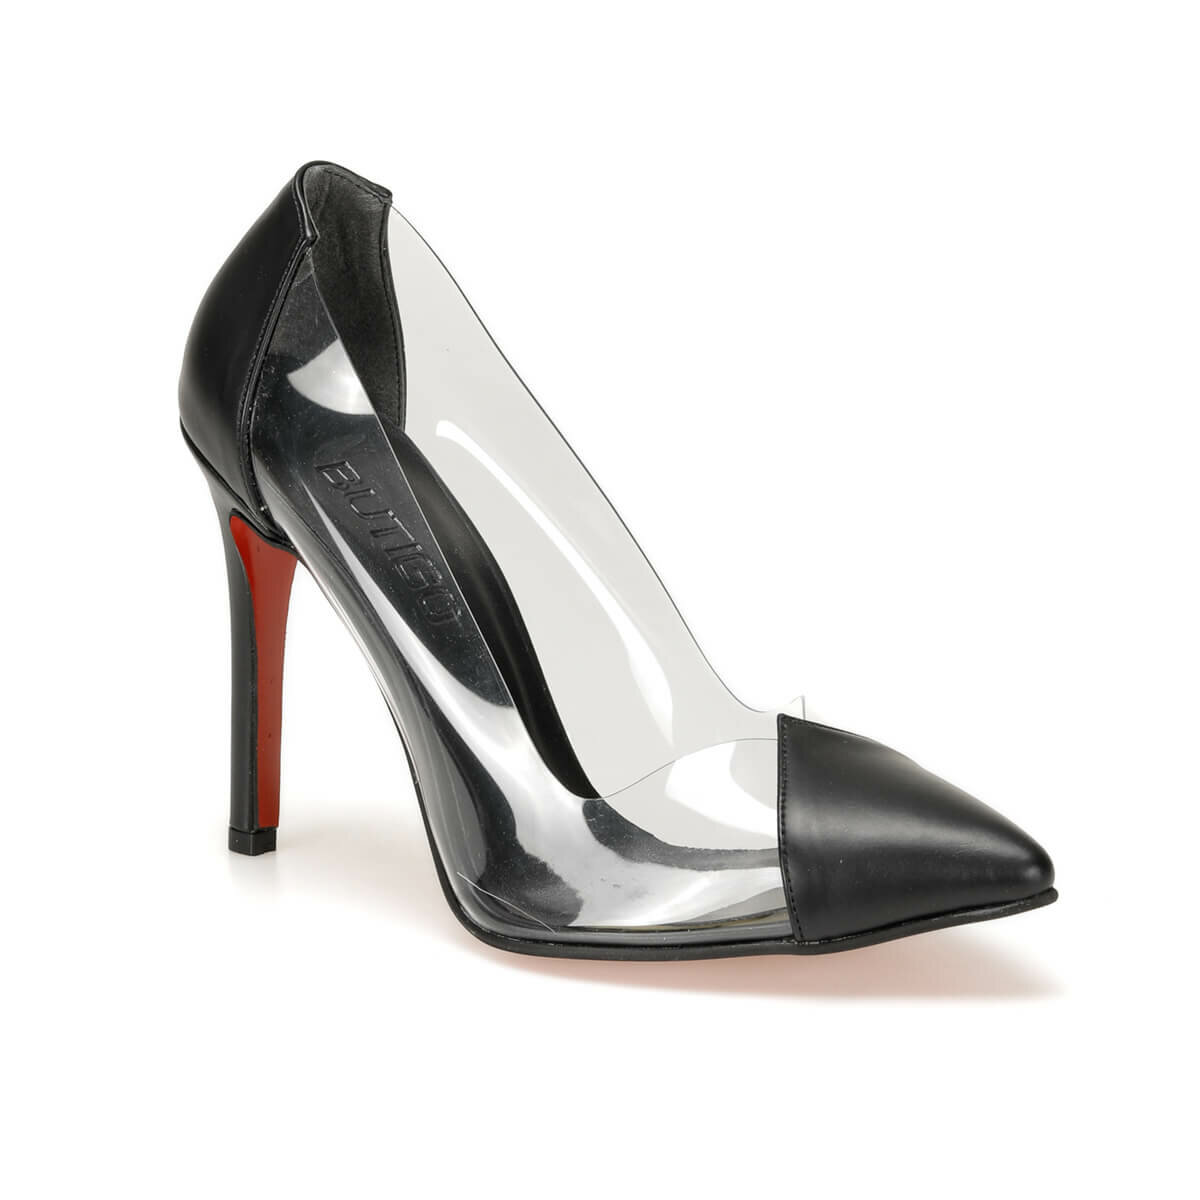 FLO LARKIN85Z SKIN Black Women Stiletto BUTIGO